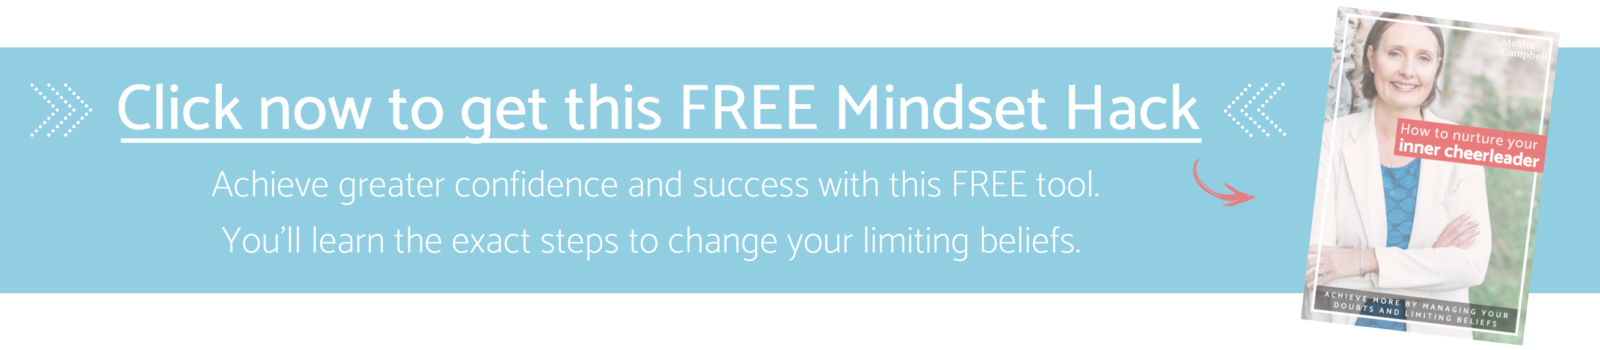 Ultimate Mindset Hack for Female Entrepreneurs - Master your Mindset with this FREE tool